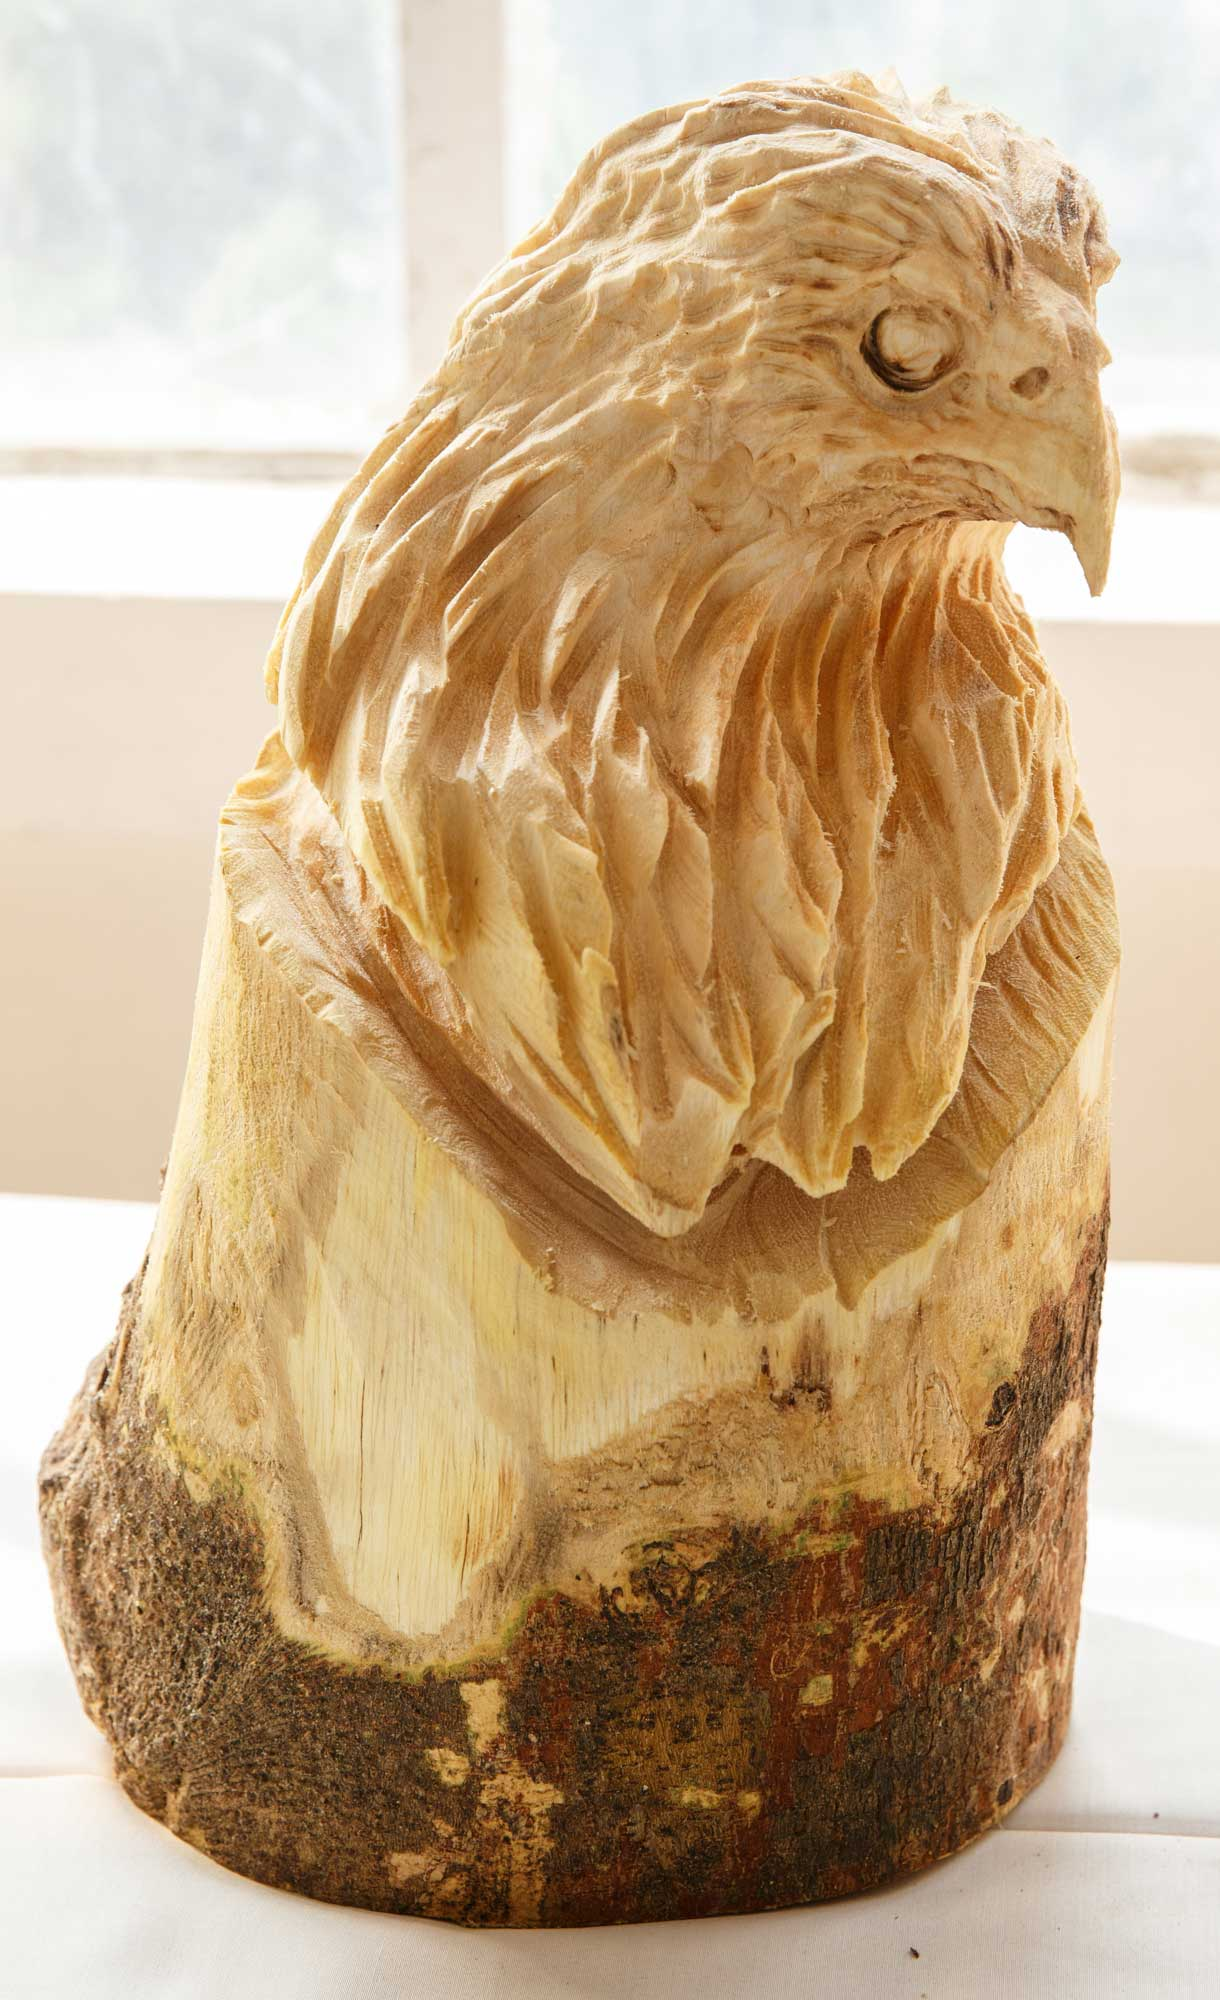 2016 WWD, woodcarving show, works